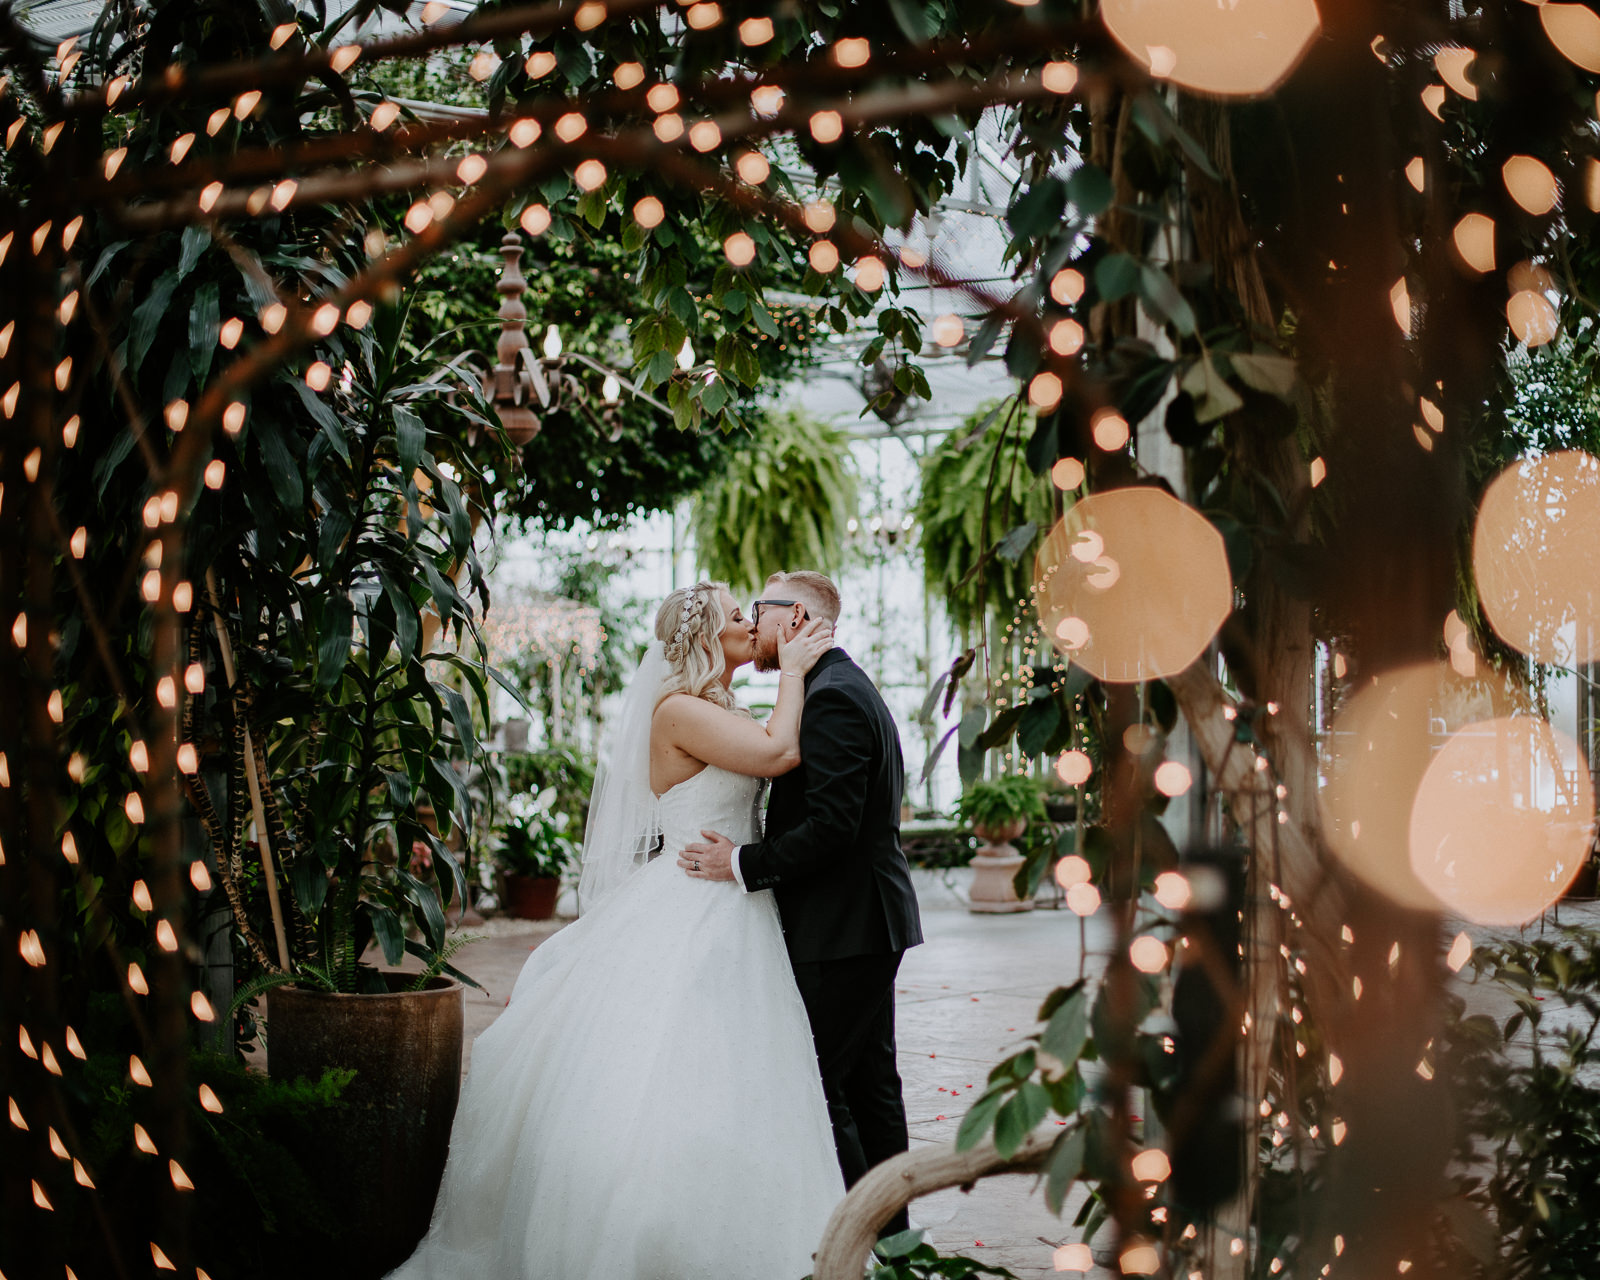 Bride and groom kissing among lights in greenhouse